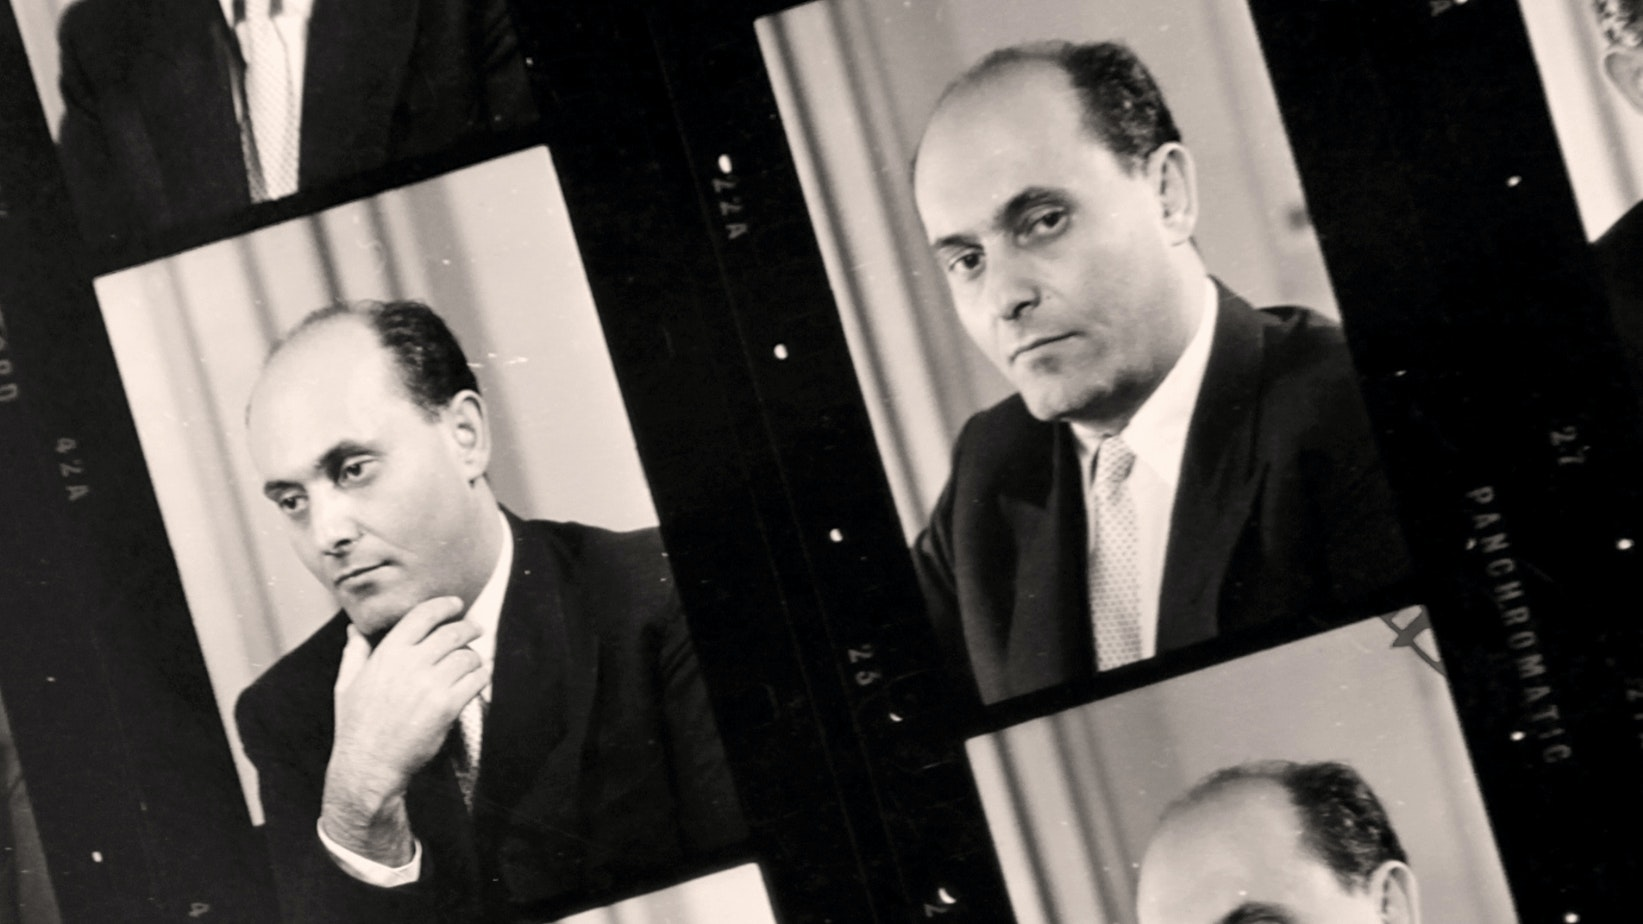 Sir Georg Solti, Journey of a Lifetime